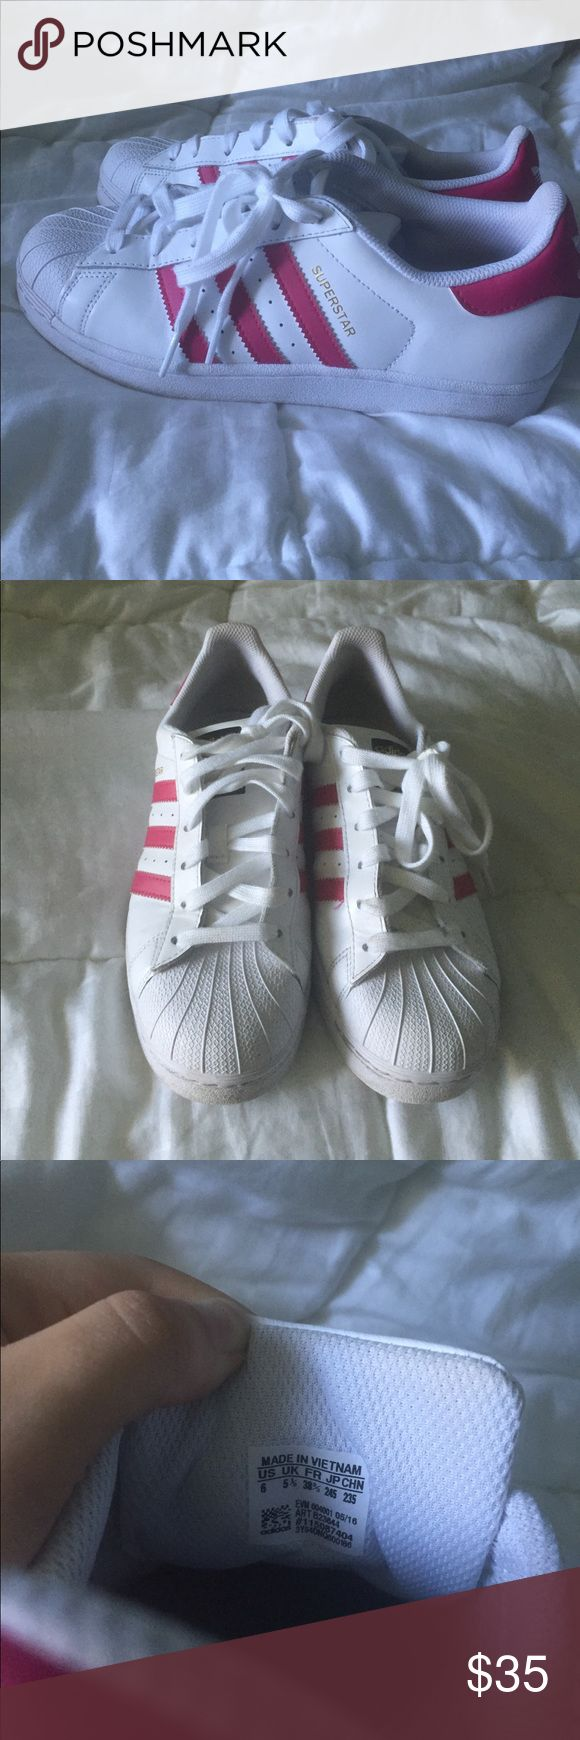 Pink adidas superstar shoes Great condition these shoes have only been worn a few times. Size kids 6, fits like a women's 7.5 adidas Shoes Sneakers